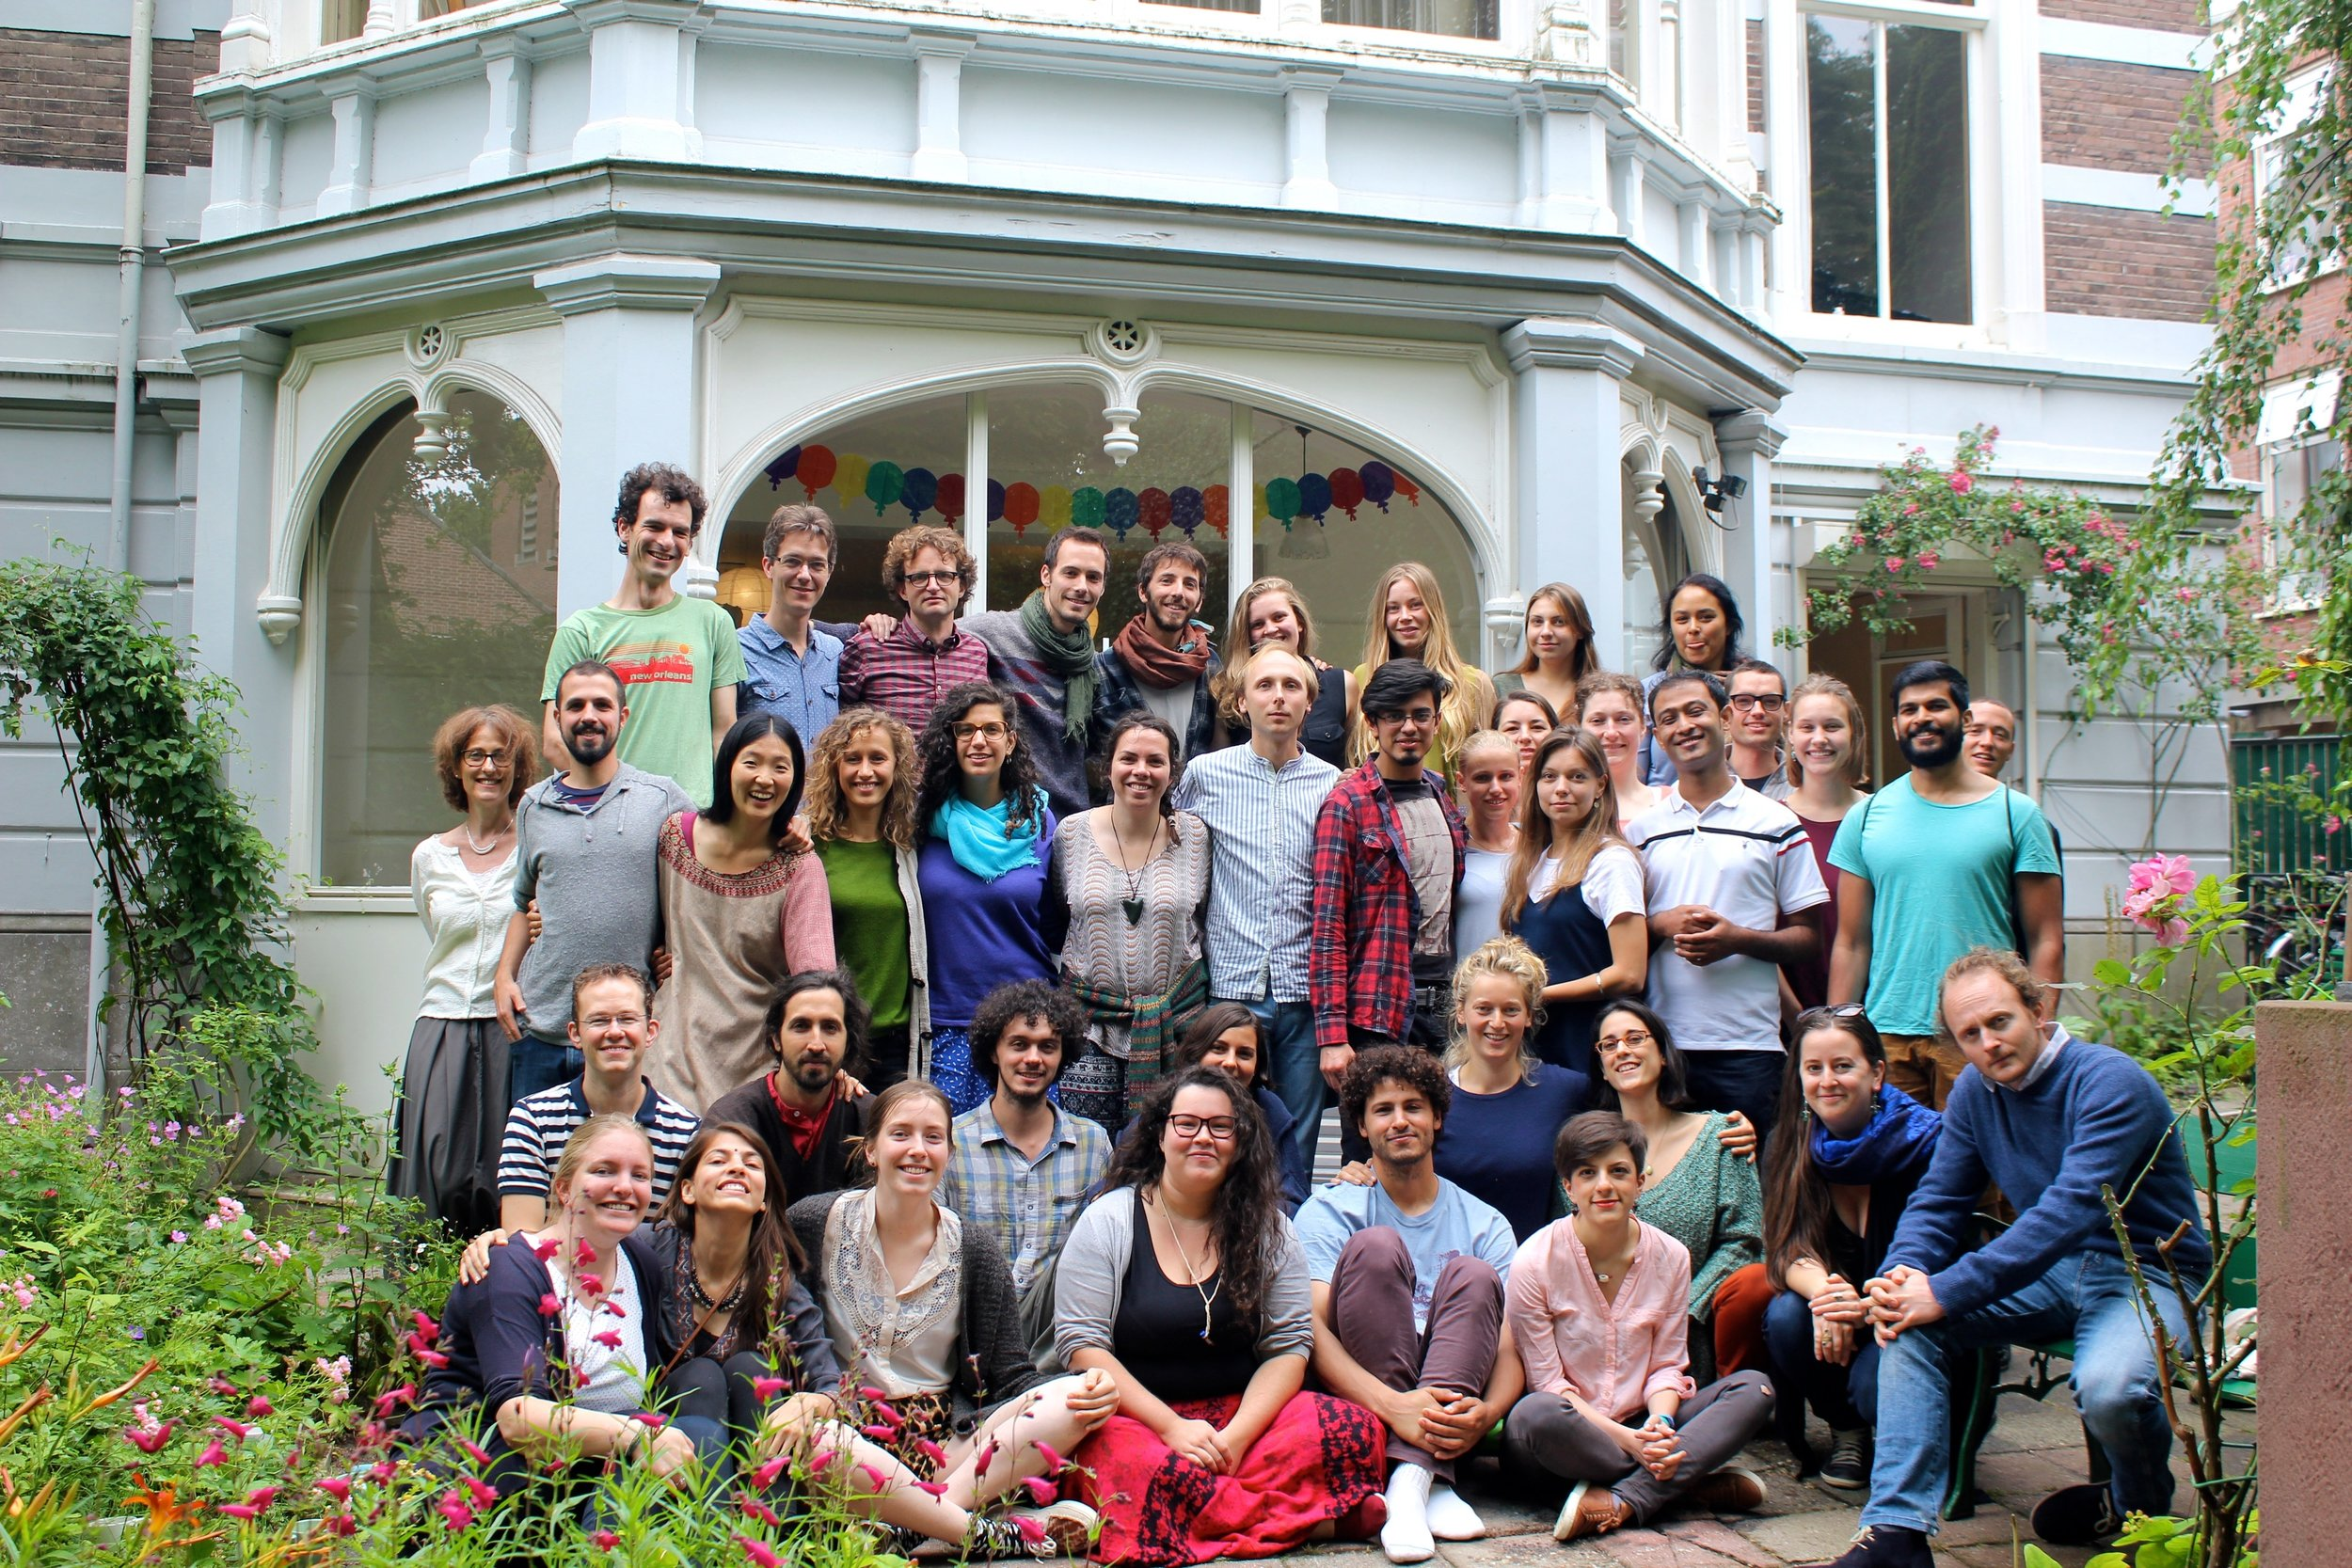 In 2017, I attended the Anthroposophical Youth Section Gathering in Den Haag, Holland. If you are wondering what the active youth are doing worldwide, here is a thorough insight into the world of our days together, brainstorming and exploring what it means to be a human in these times, and what action steps we took to grapple with the consequences of human actions.